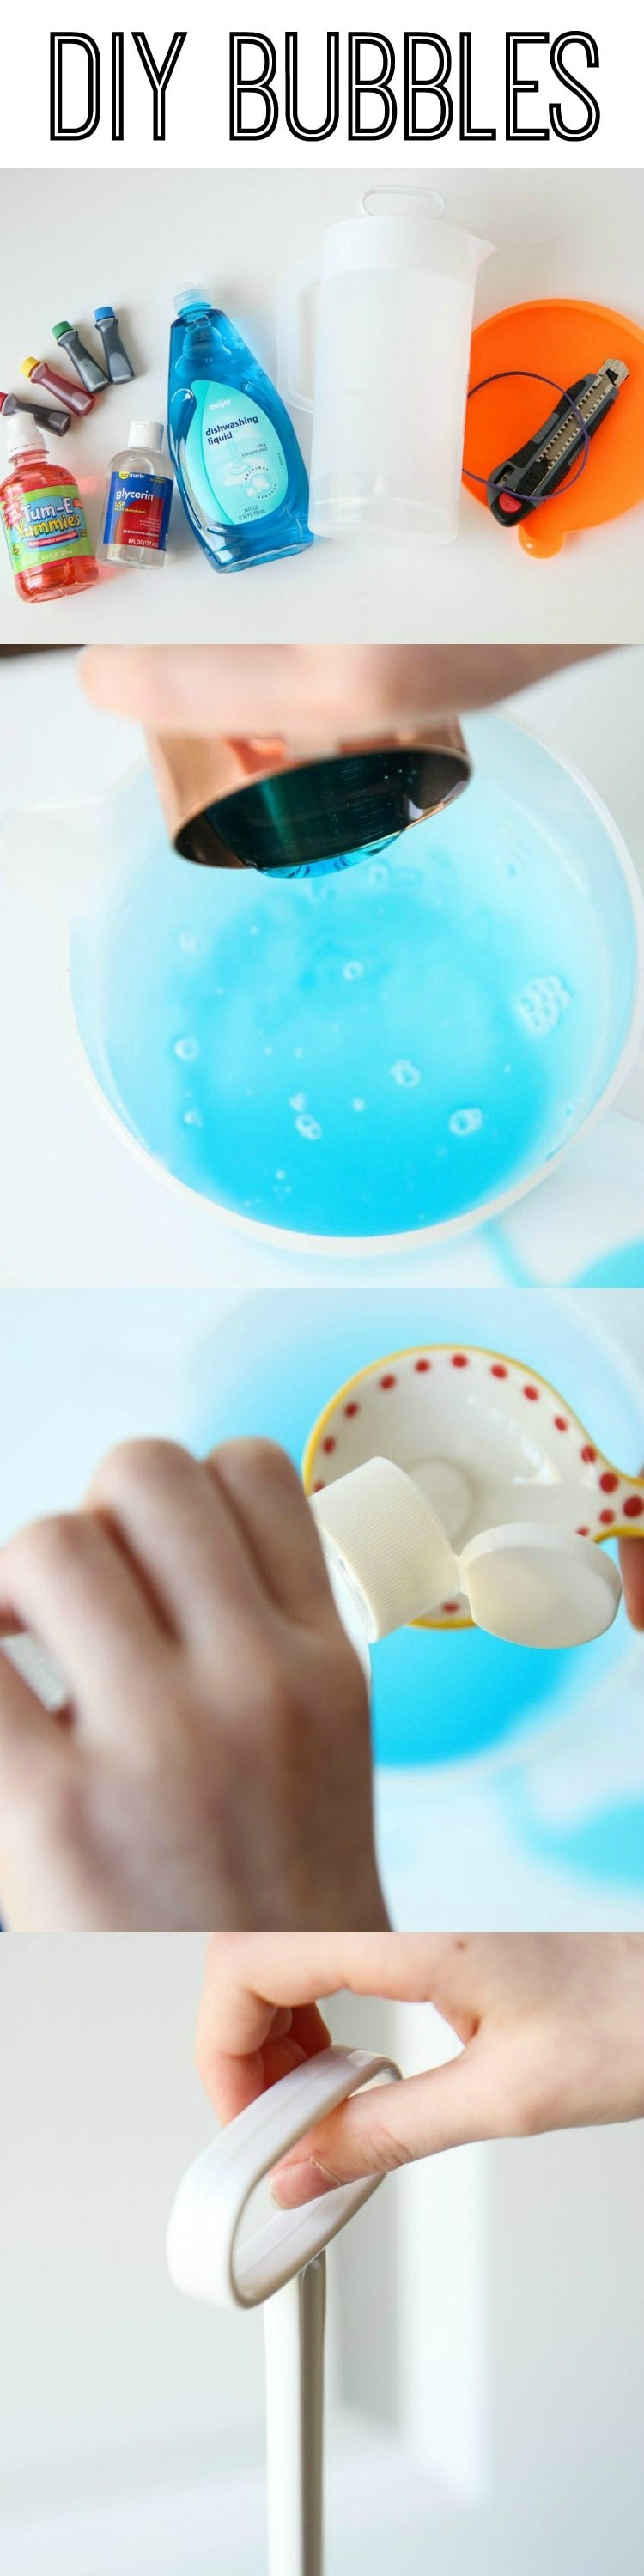 DIY Bubbles Recipe from MomAdvice.com